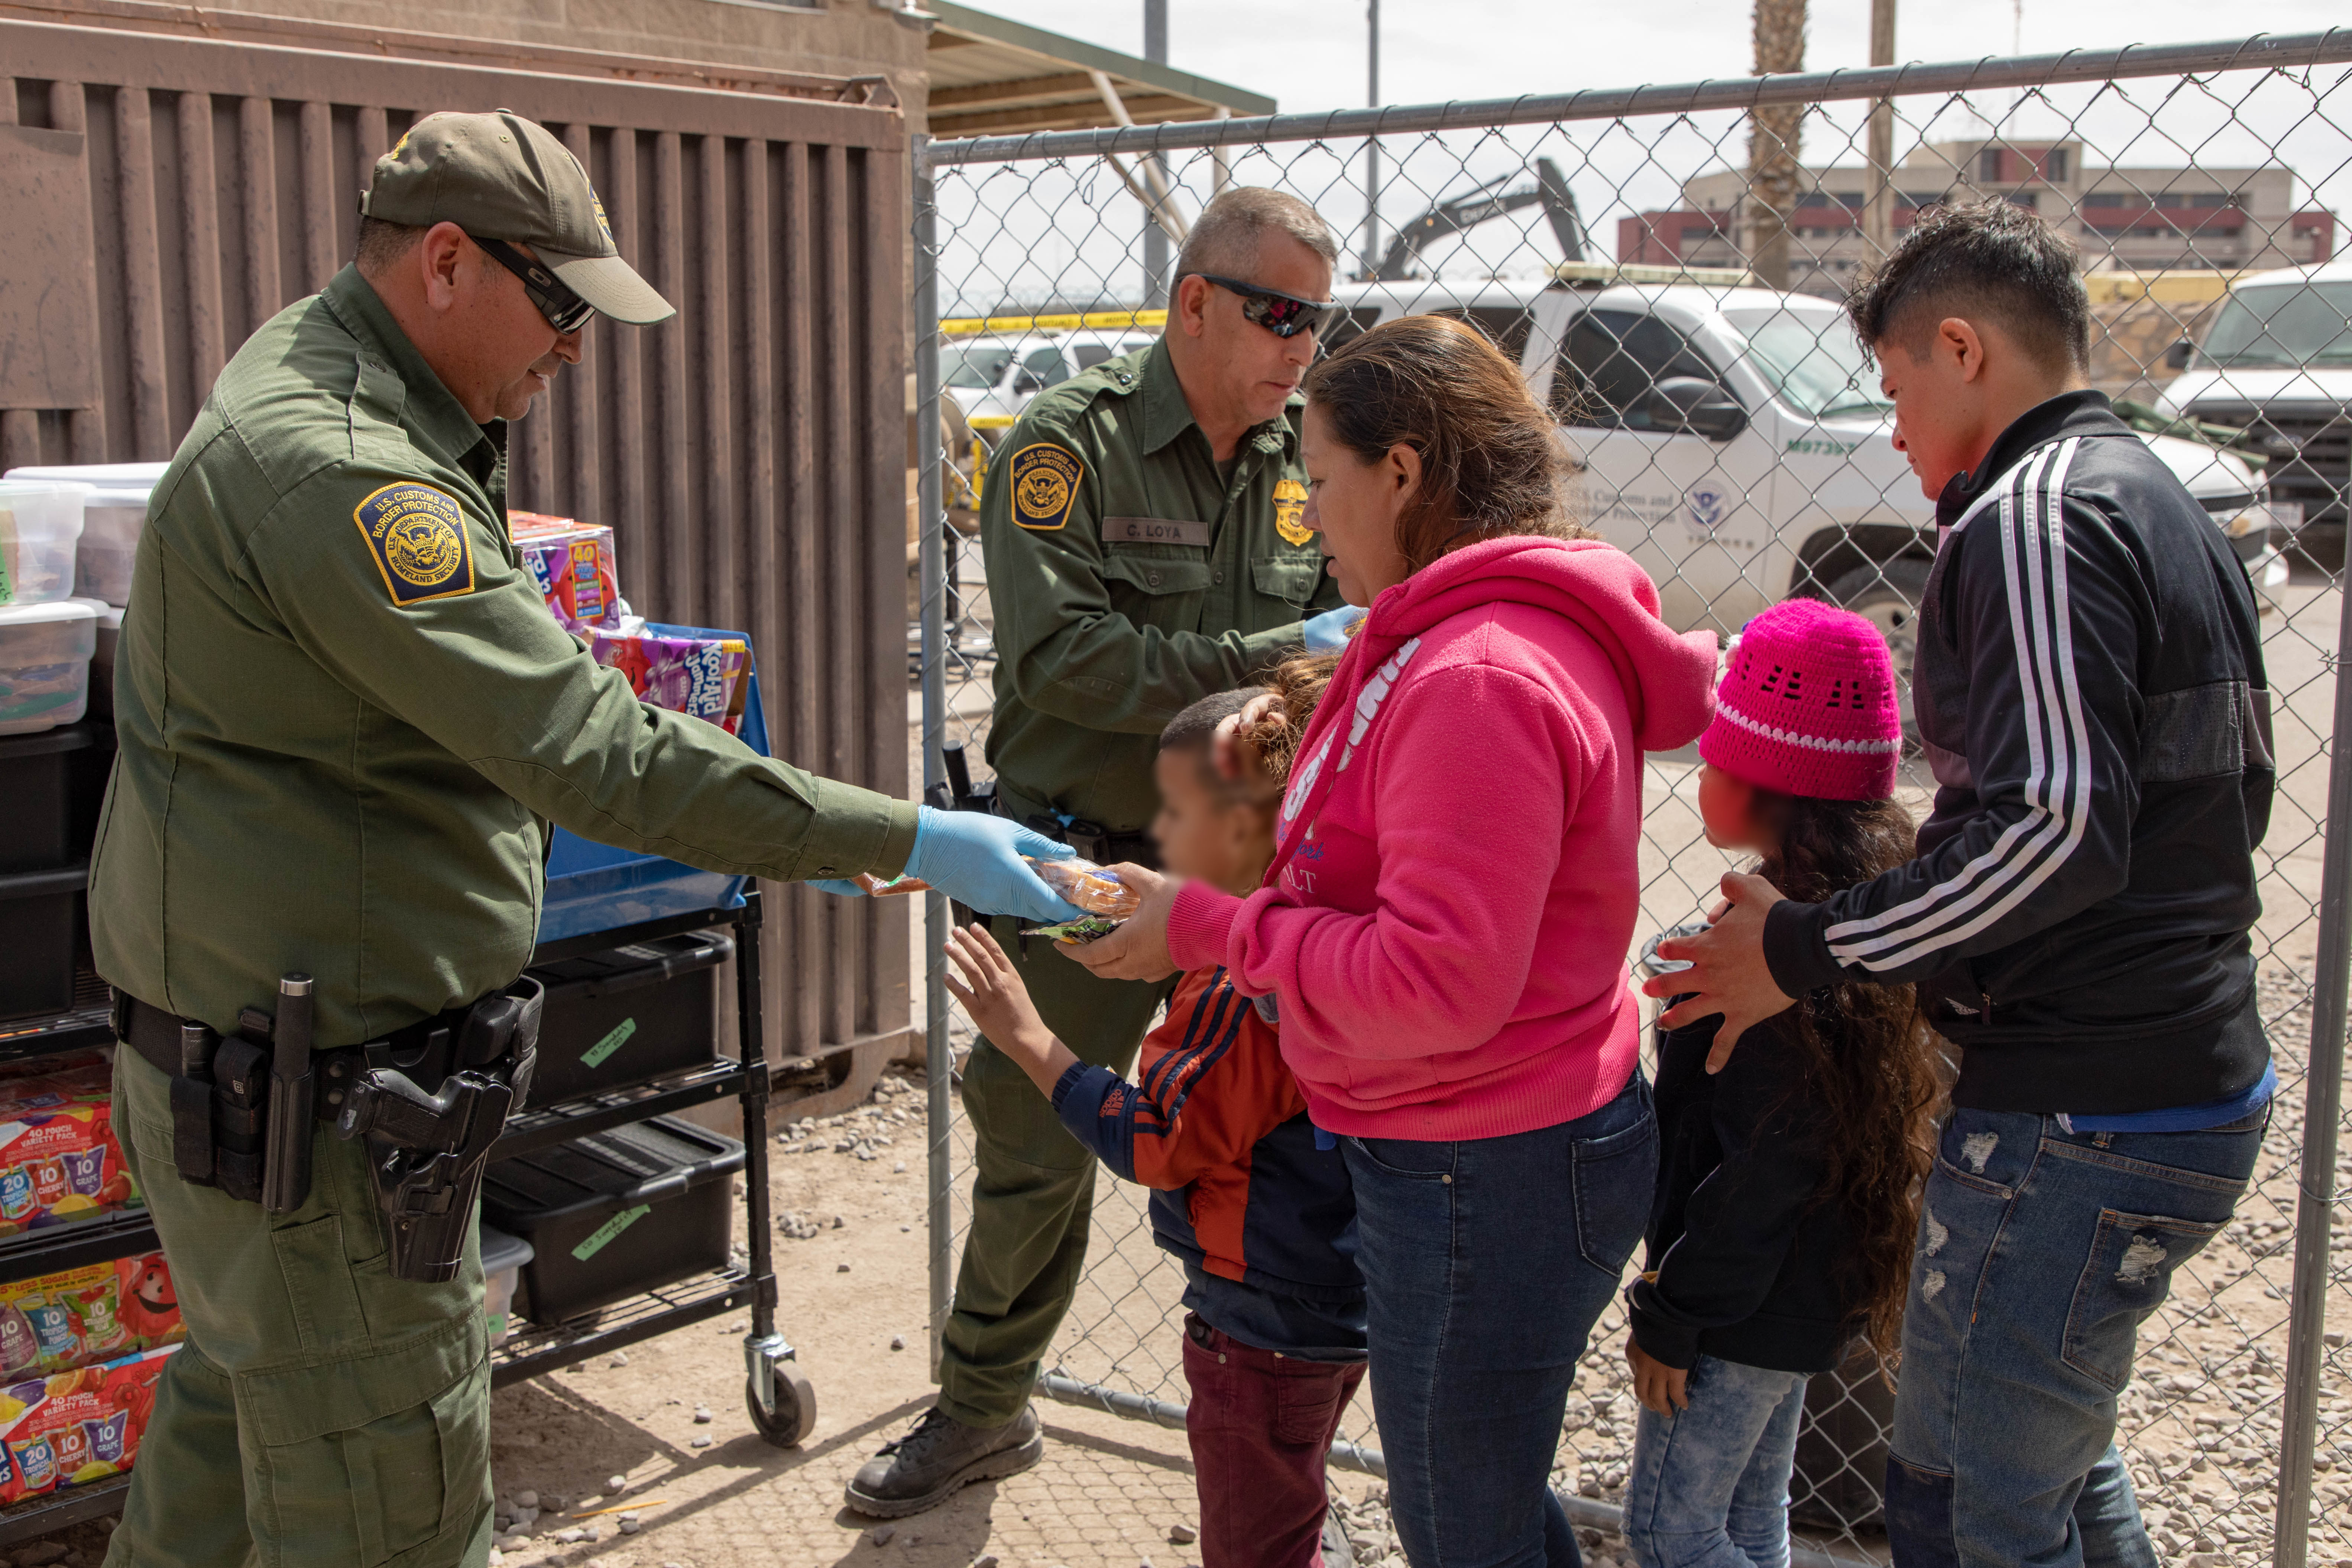 In this handout image provided by the U.S. Customs and Border Protection Office of Public Affairs - Visual Communications Division, after crossing the international border between the United States and Mexico, and surrendering to a border patrol agent, migrants are brought to a processing center where they receive food and water as well as medical attention if needed, on March 22, 2 (Photo by Mani Albrecht/U.S. Customs and Border Protection via Getty Images)